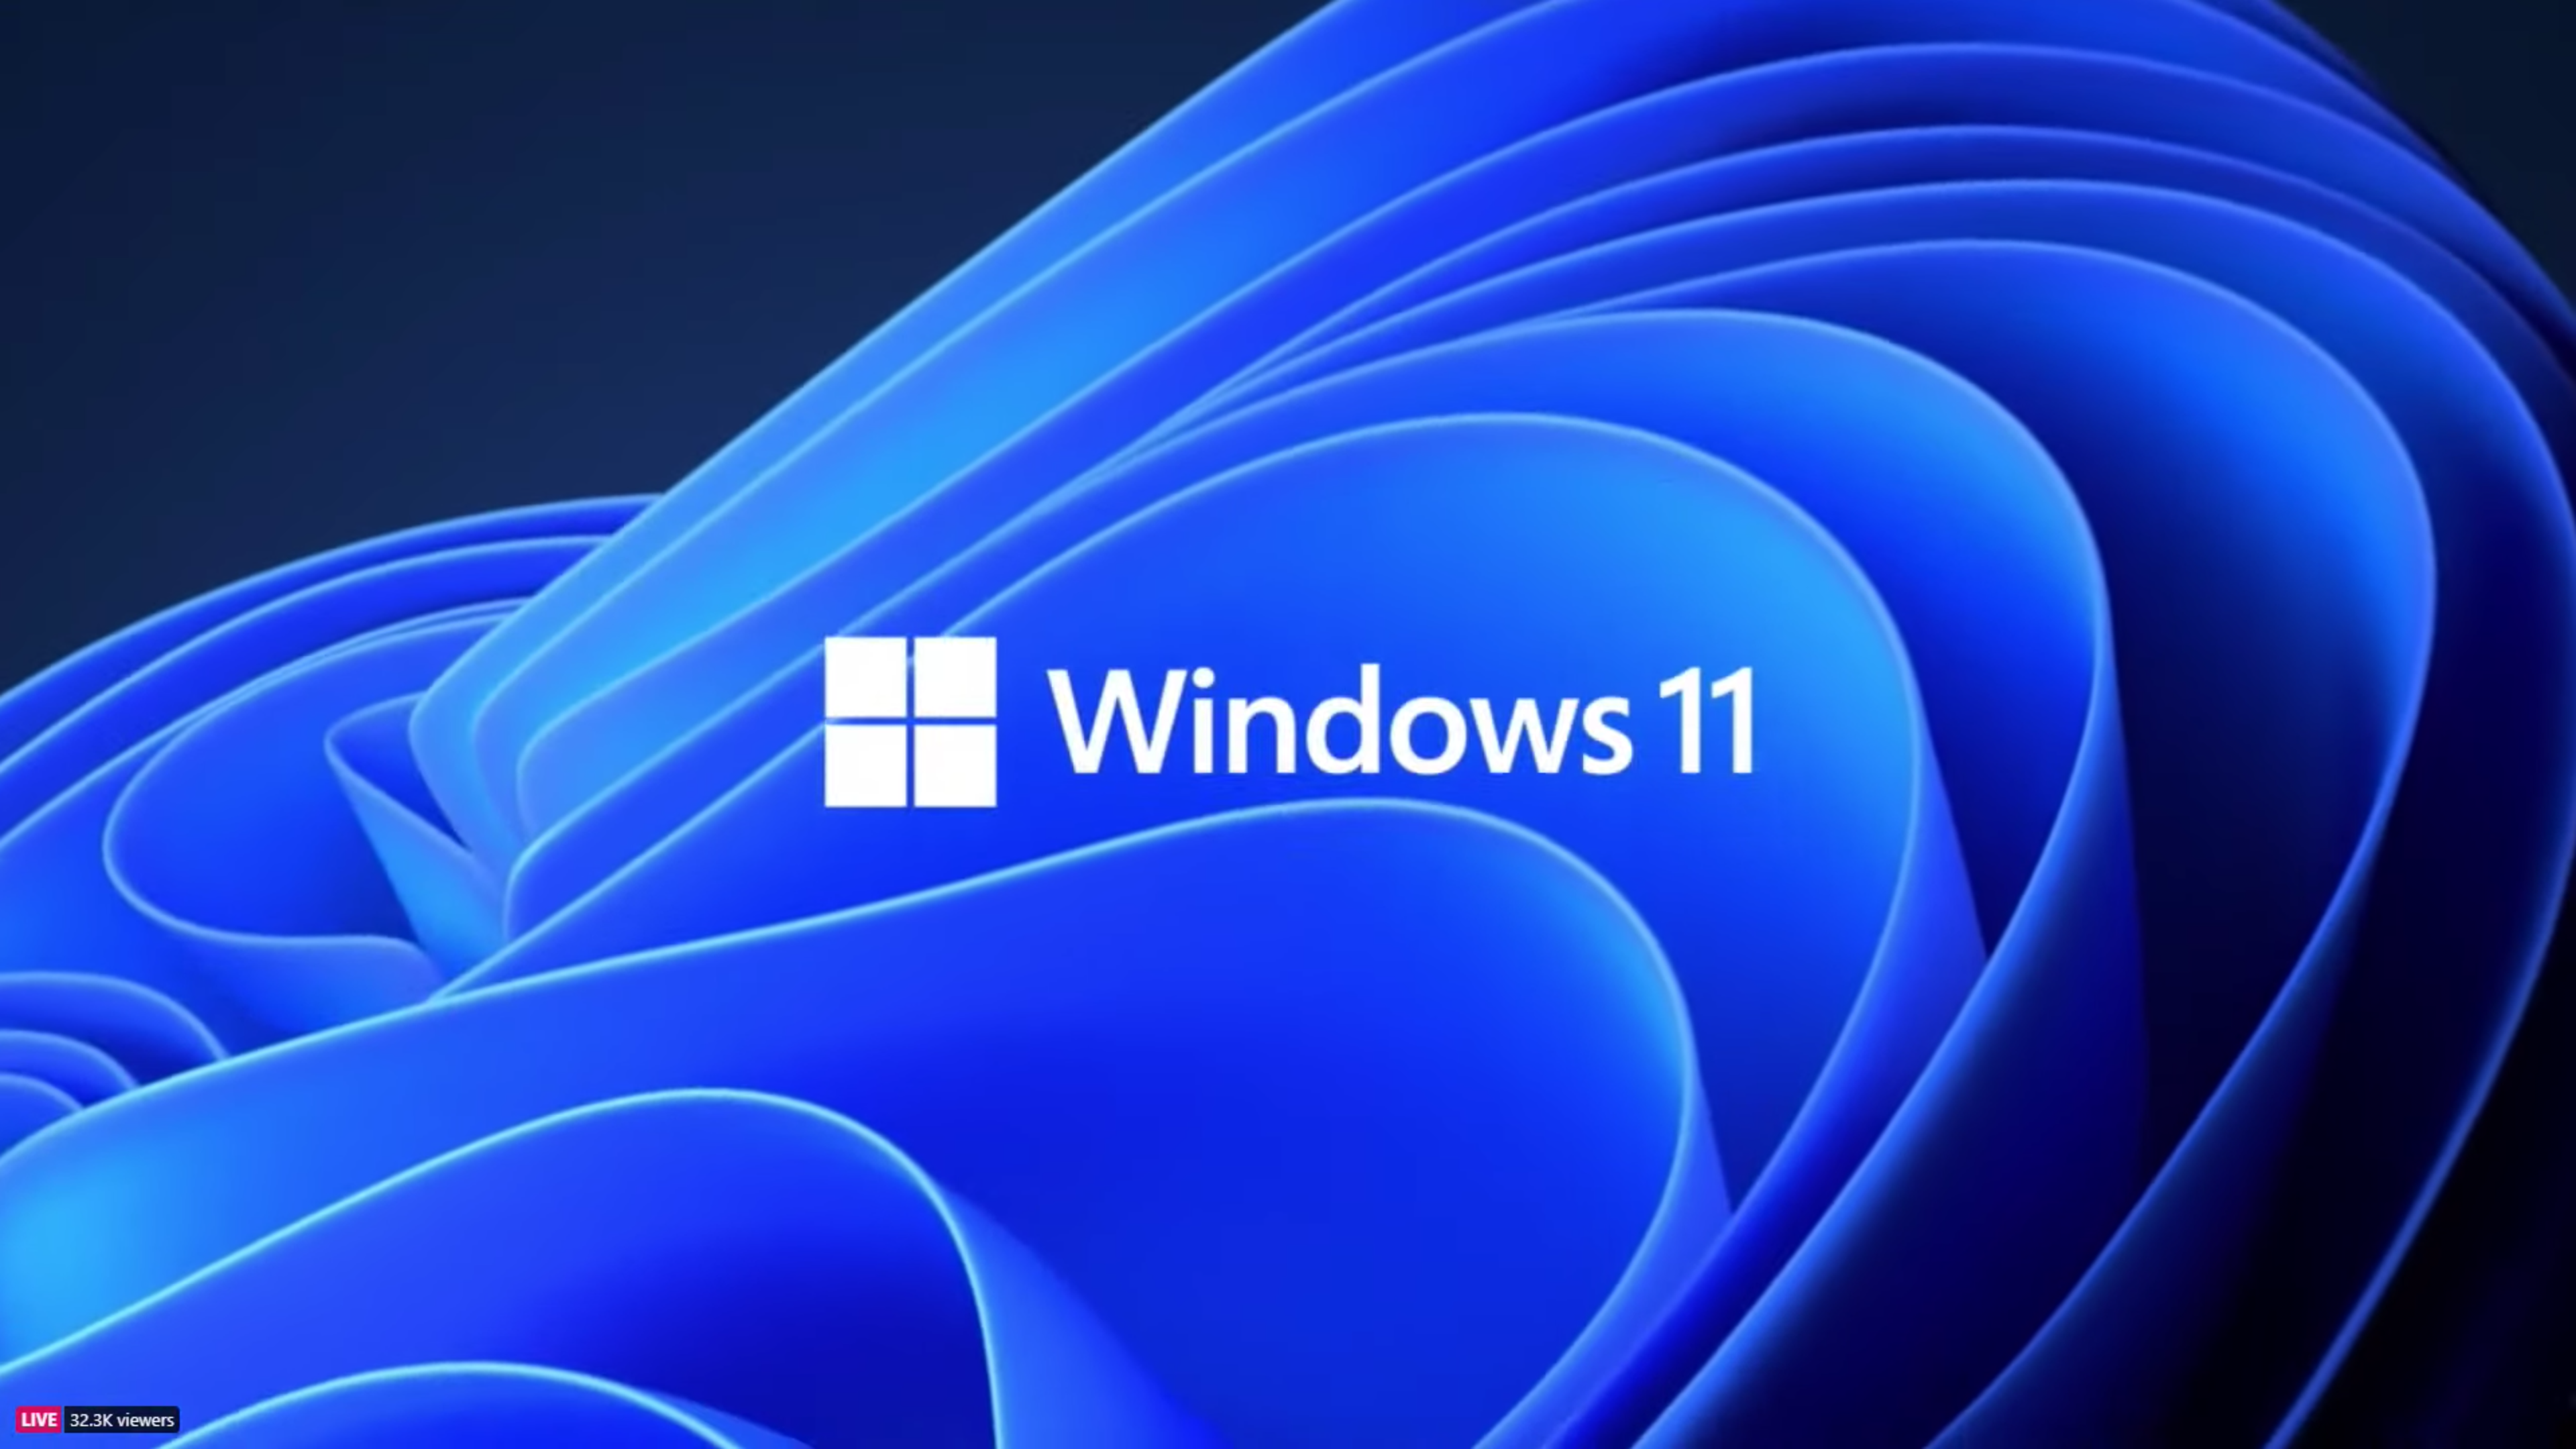 Windows 11 upgrade: Download Microsoft's new OS right now with this workaround